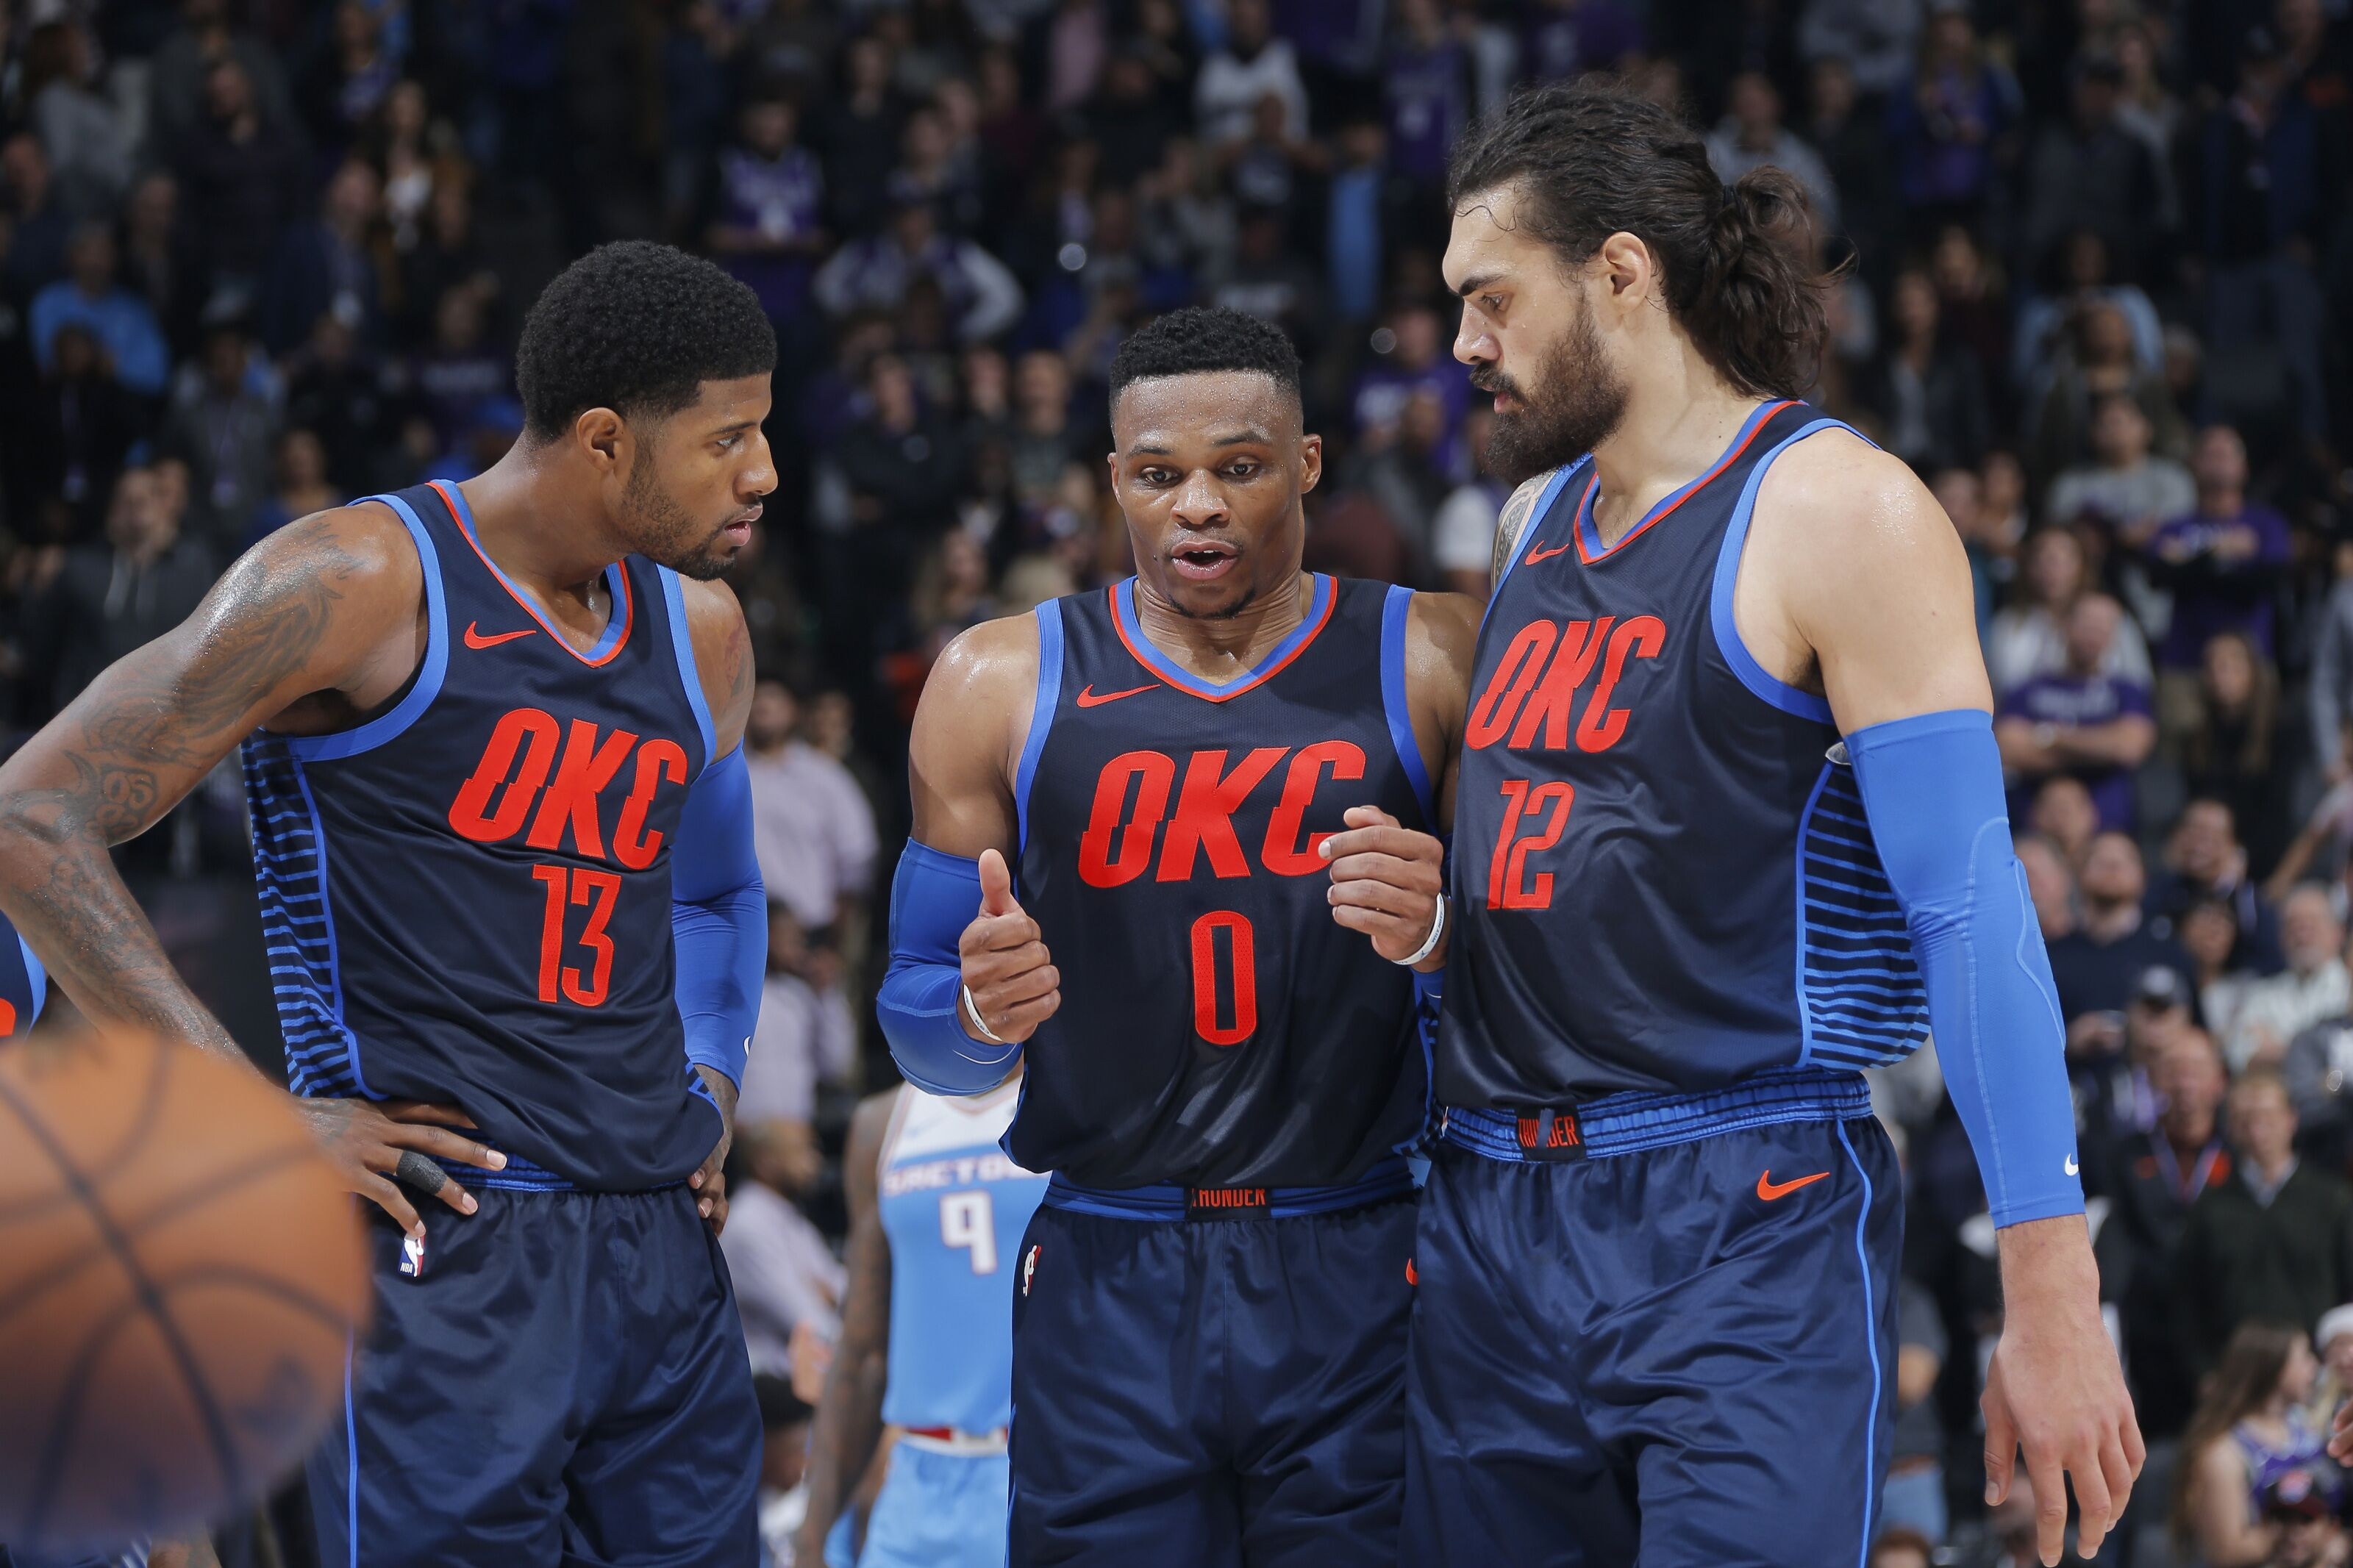 Okc Thunder In The News All Star Contenders And Clutch Time